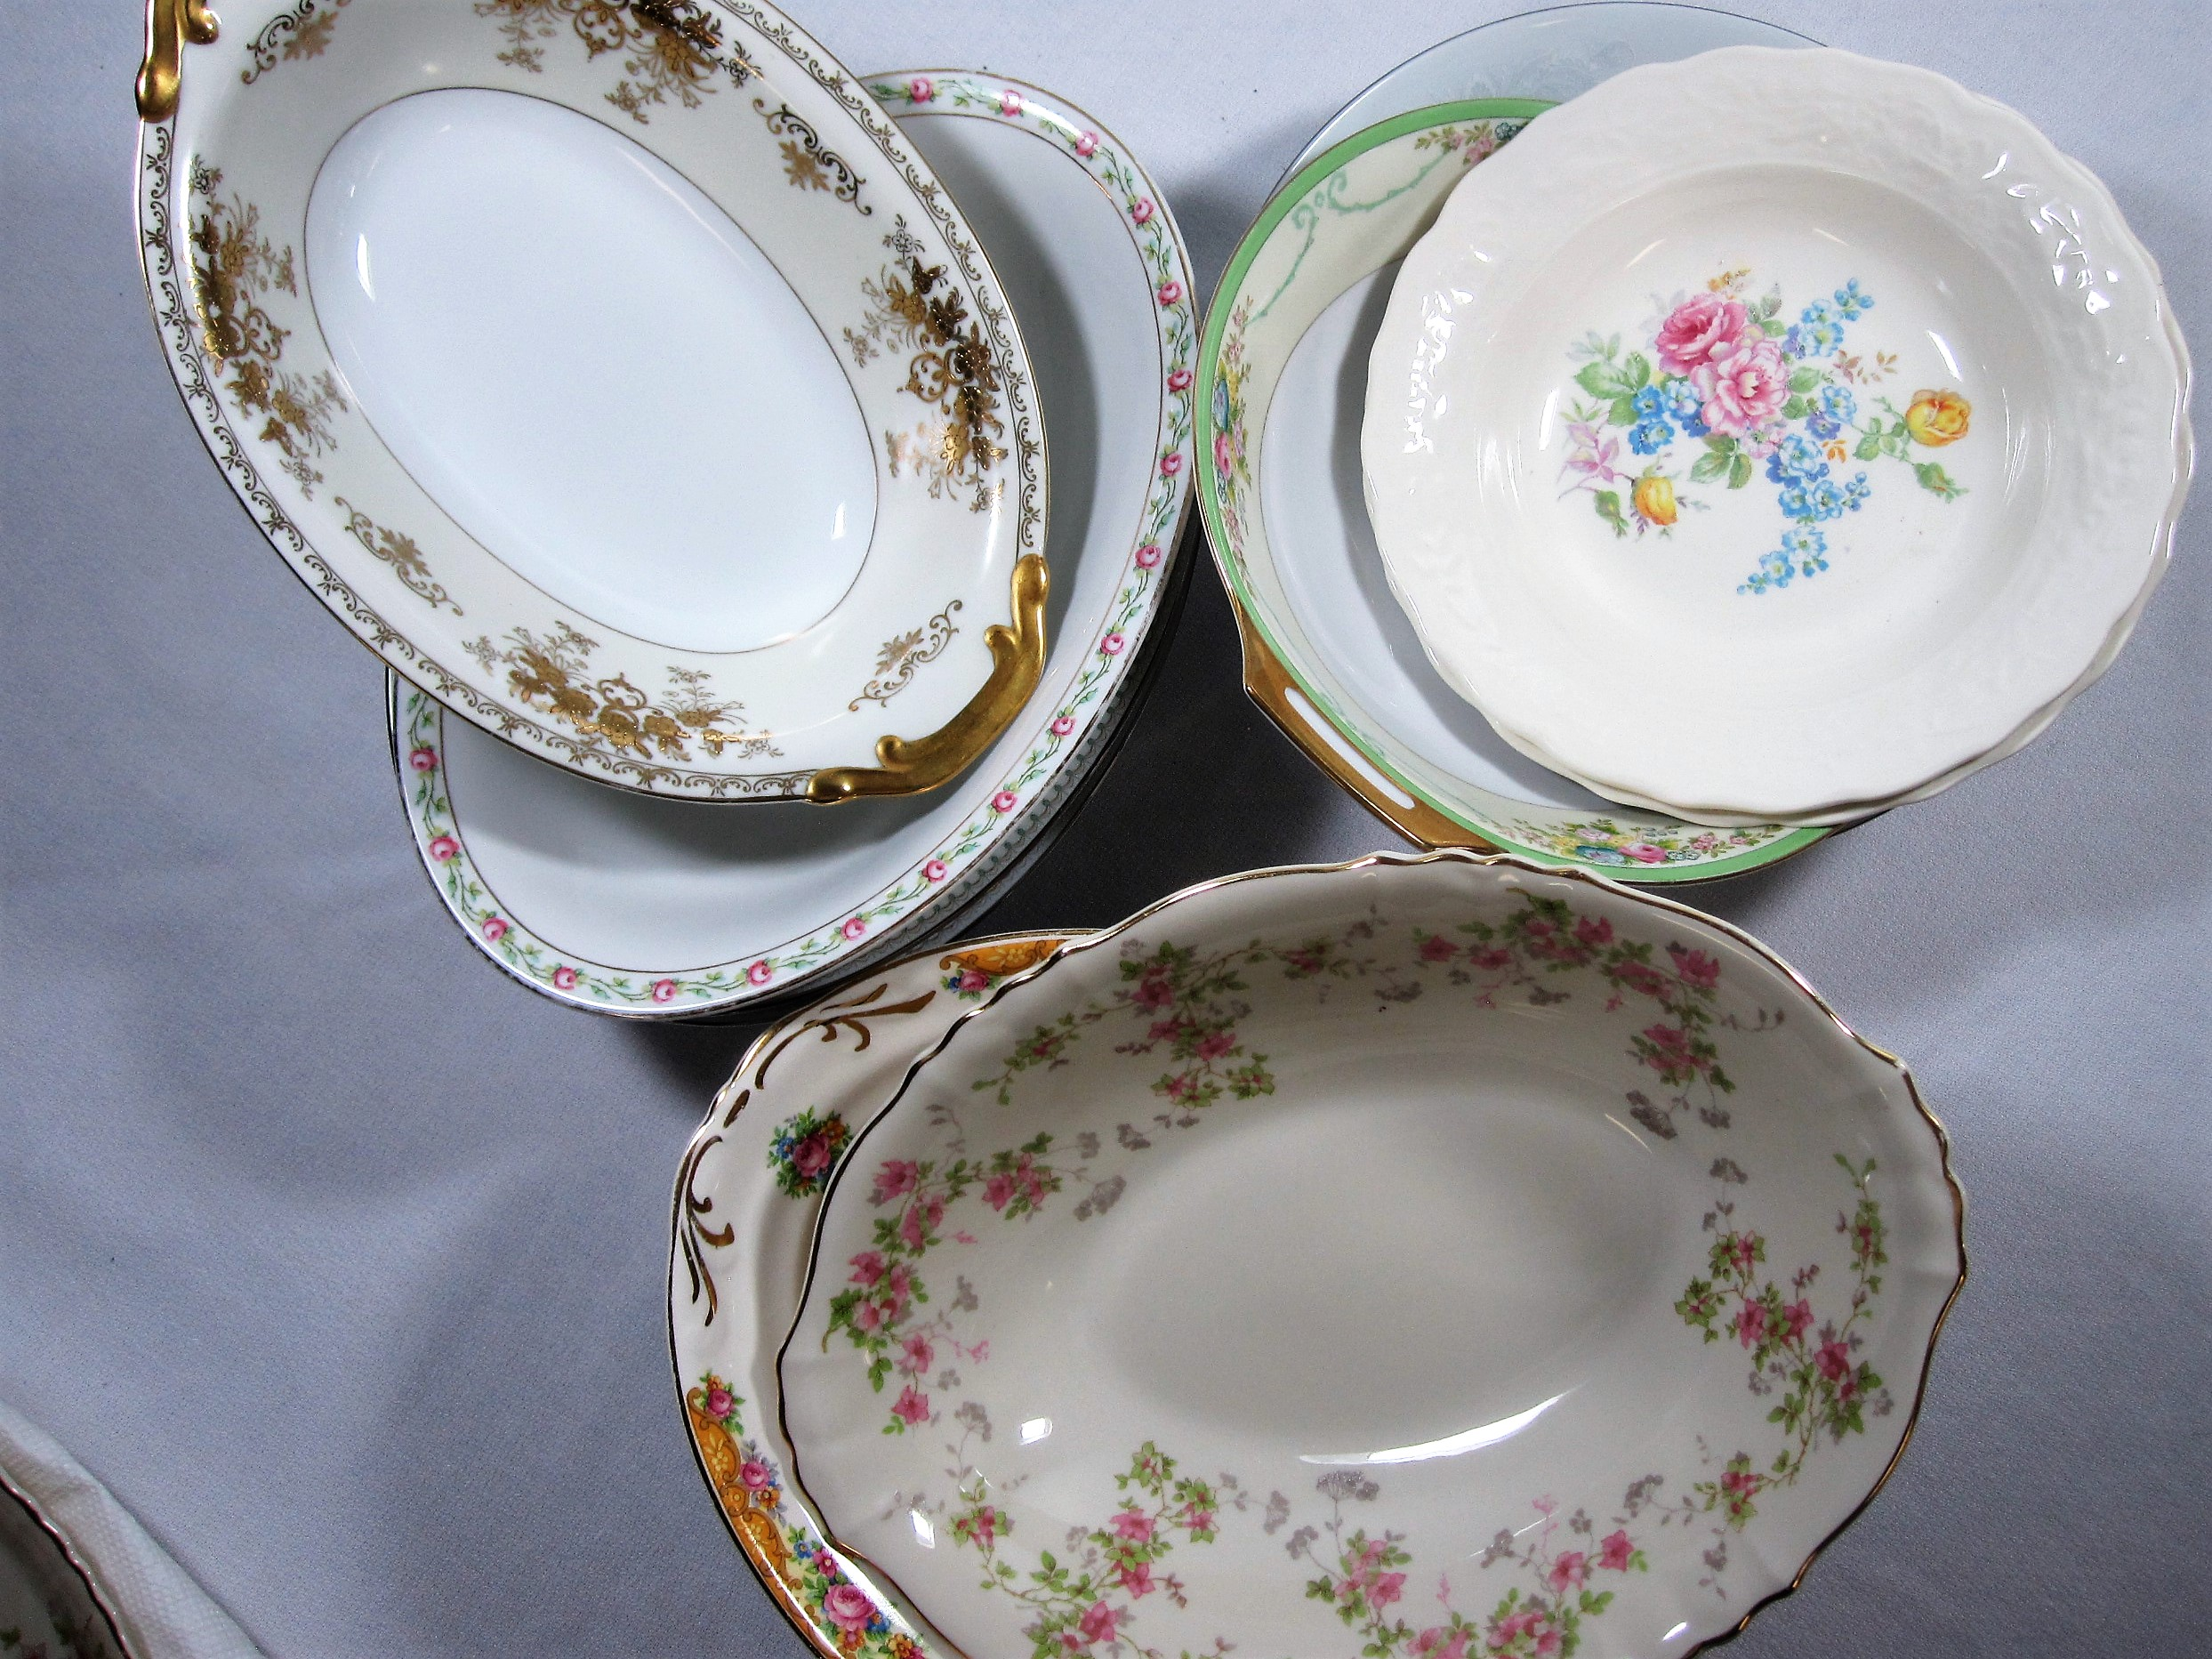 China Serving Bowls - Description ~ variety of gold and floral patterns; great for family style serviceQuantityRental Price ~ $2 - $5